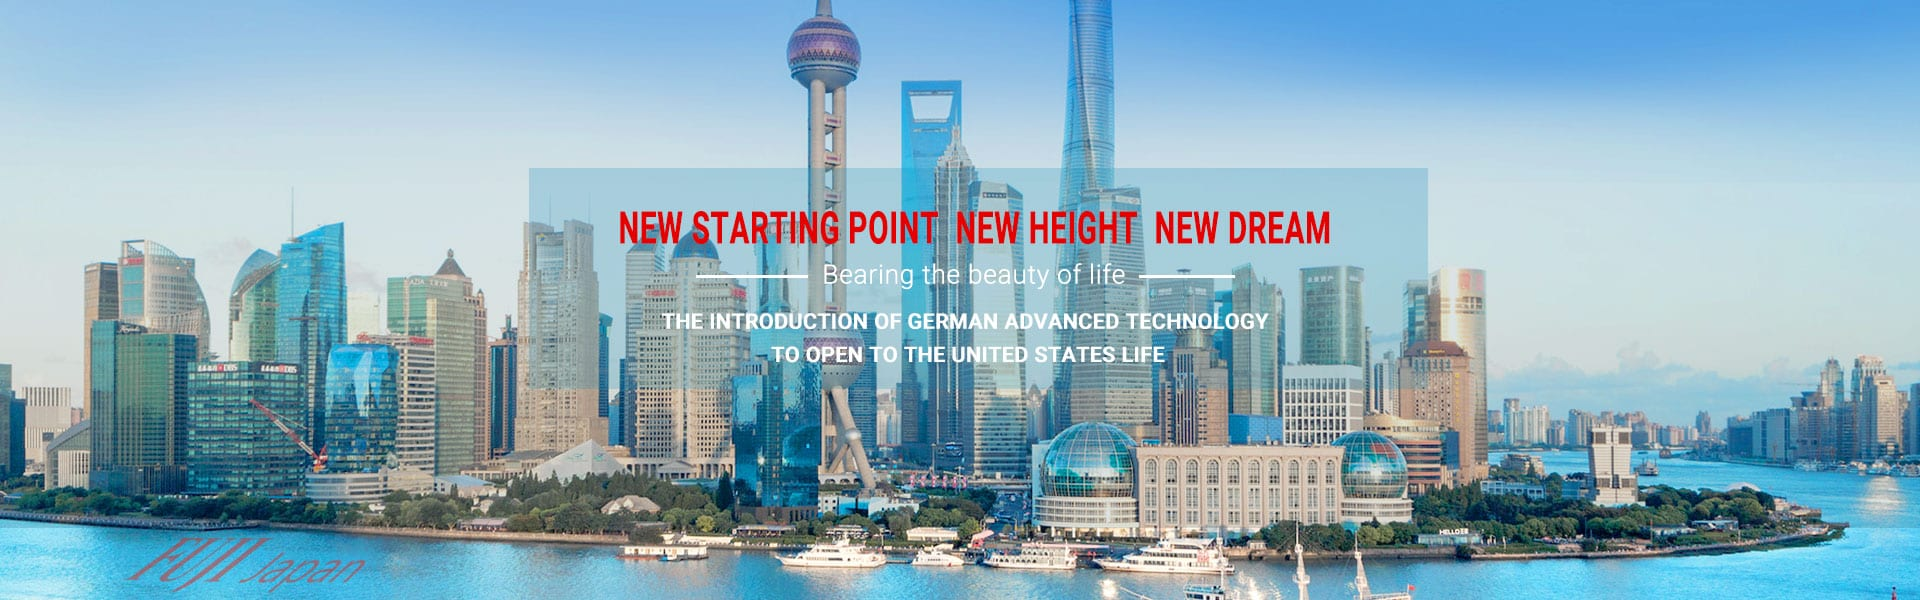 New starting point  new height  new dream